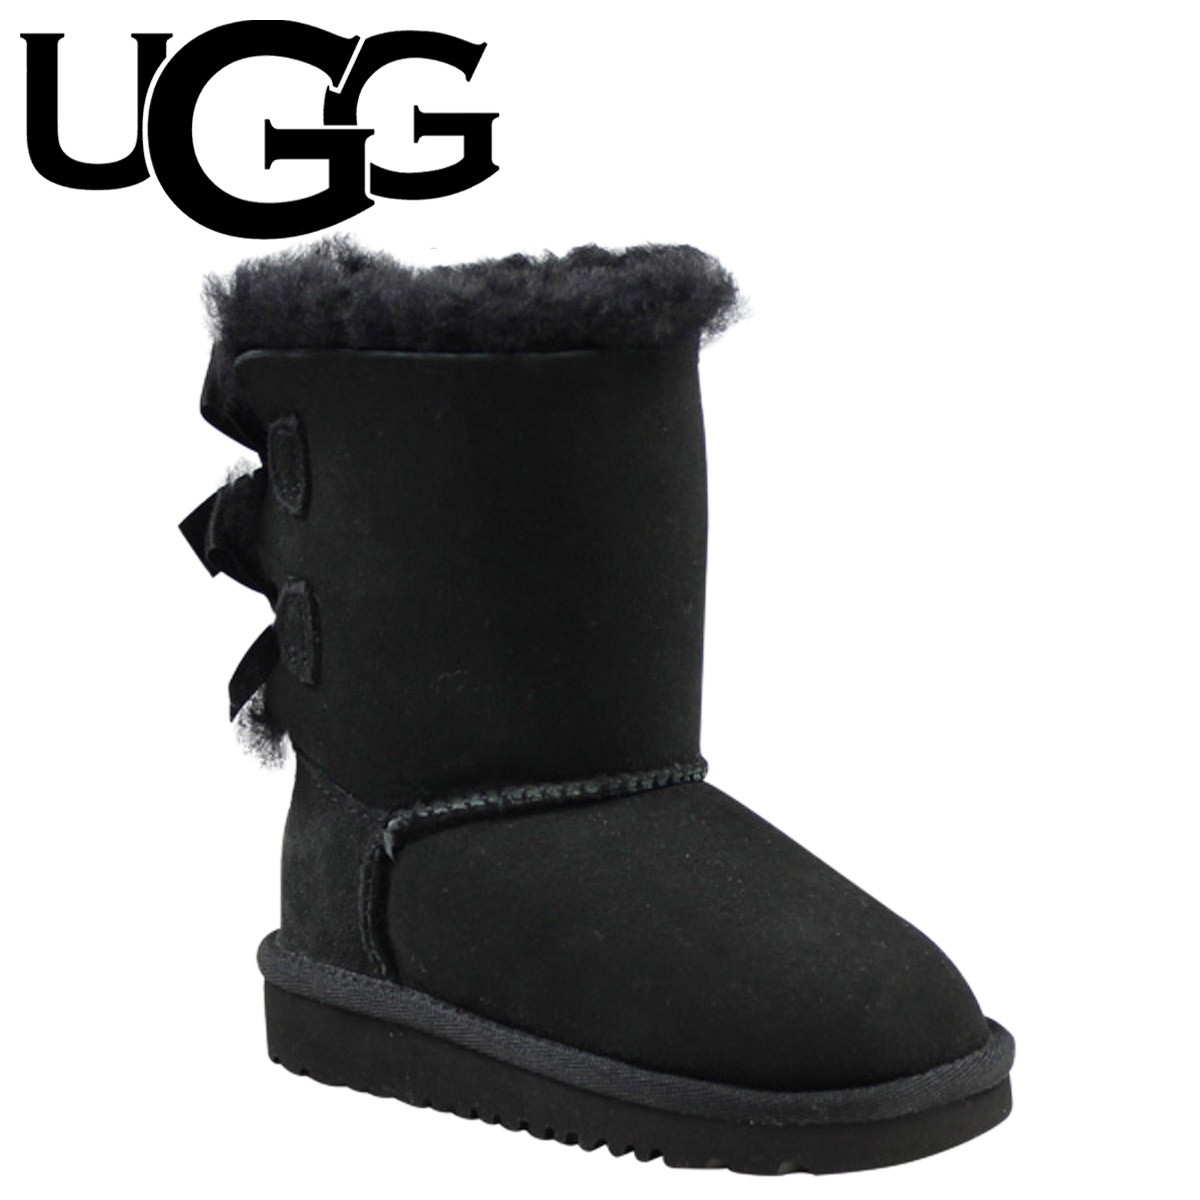 Point 2 x UGG UGG baby kids Bailey bow boots TODDLER BAILEY BOW Shearling Sheepskin junior kids 3280T black [1 / 31 new in stock] [regular] 02P08Feb15